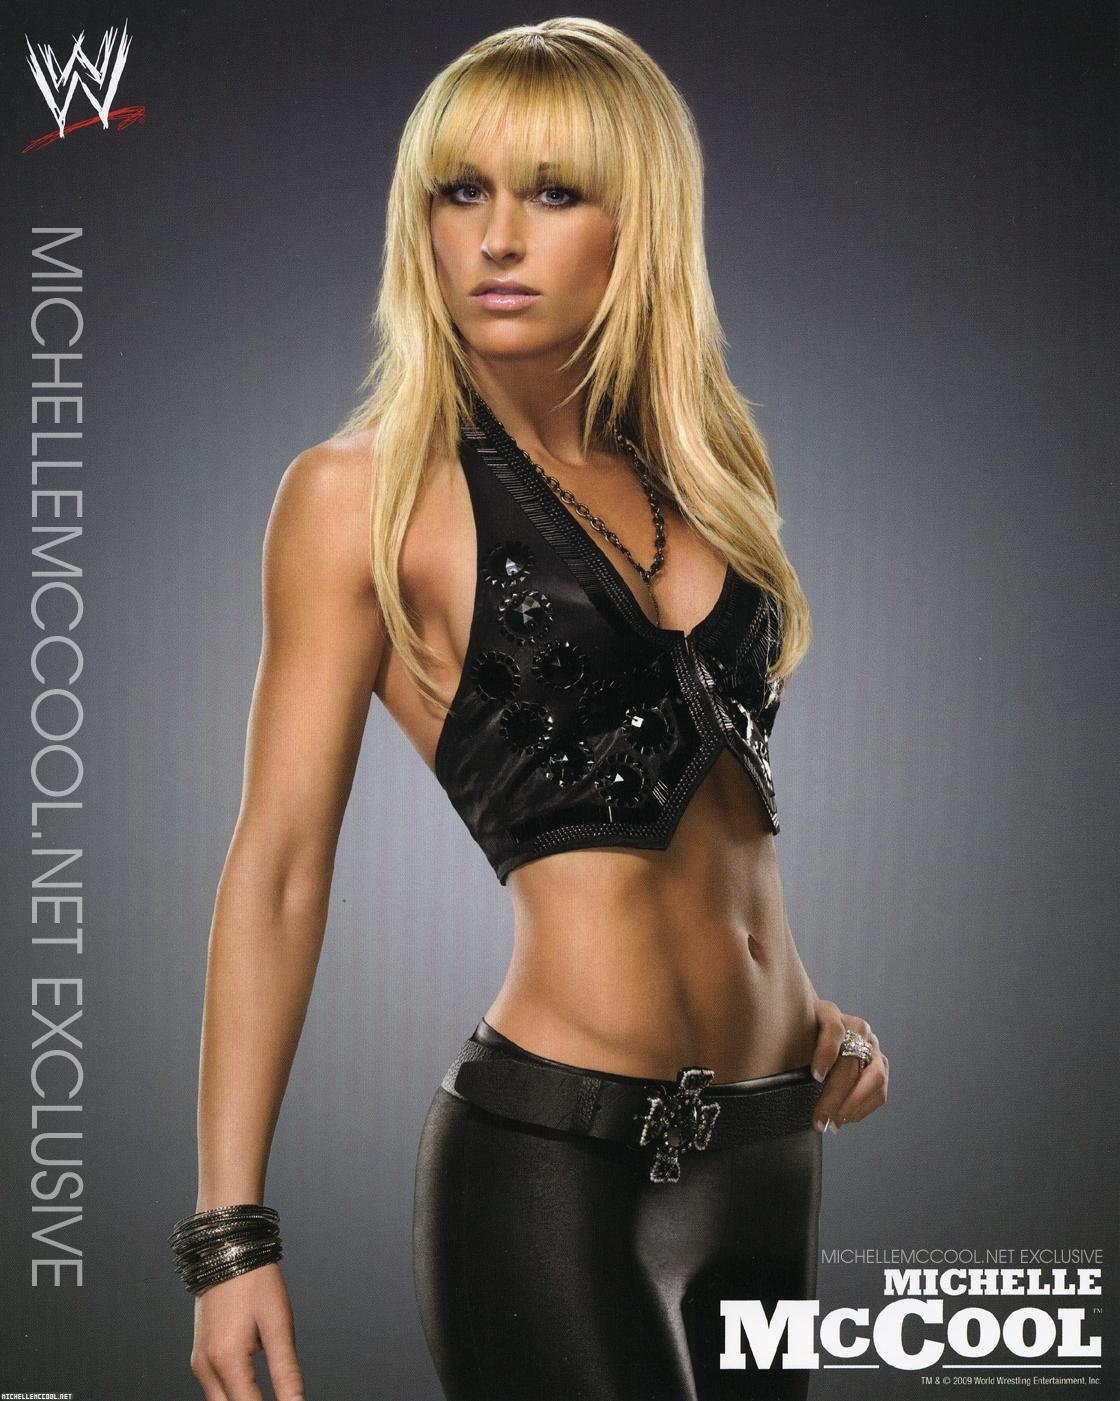 michelle mccool fat picture